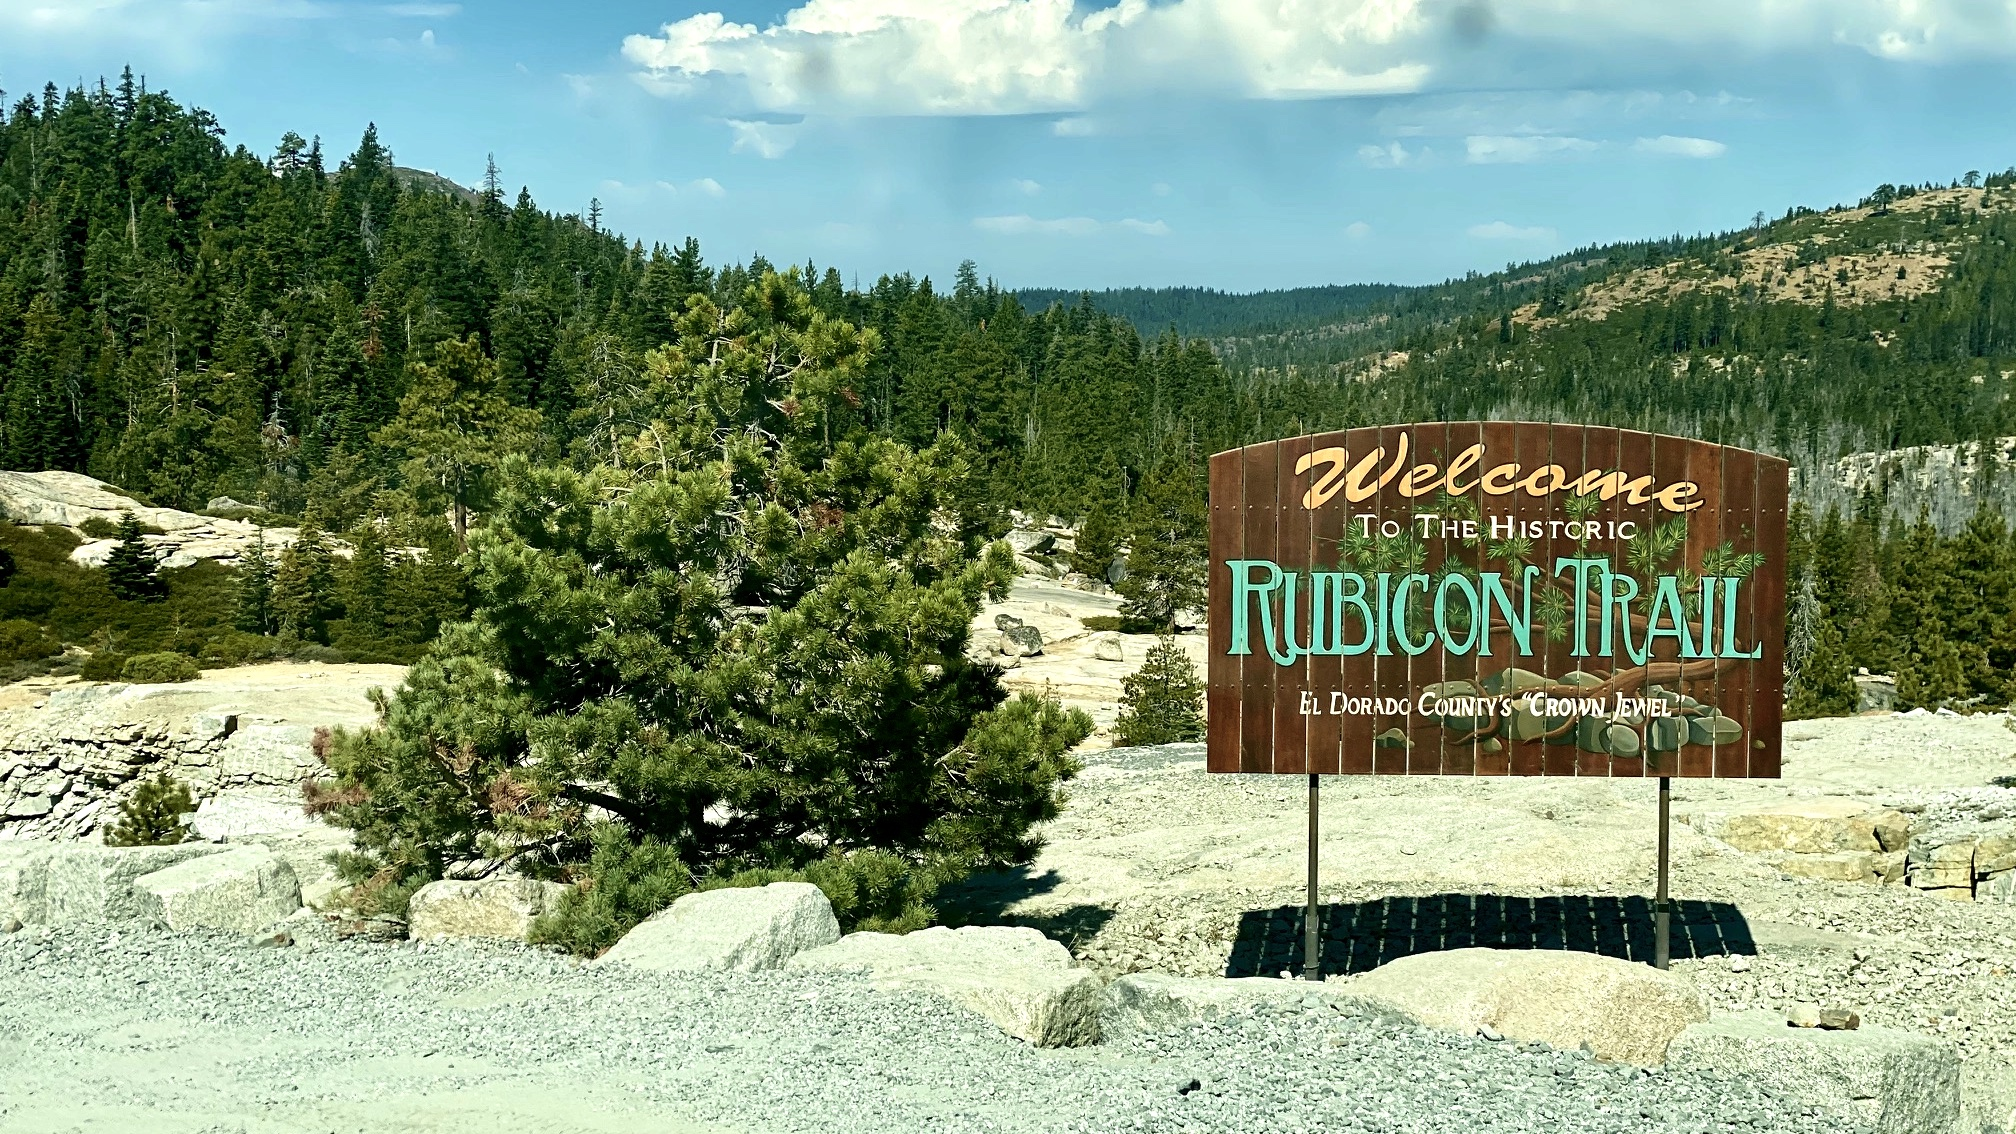 WYOMING: JEEPING TO THE RUBICON